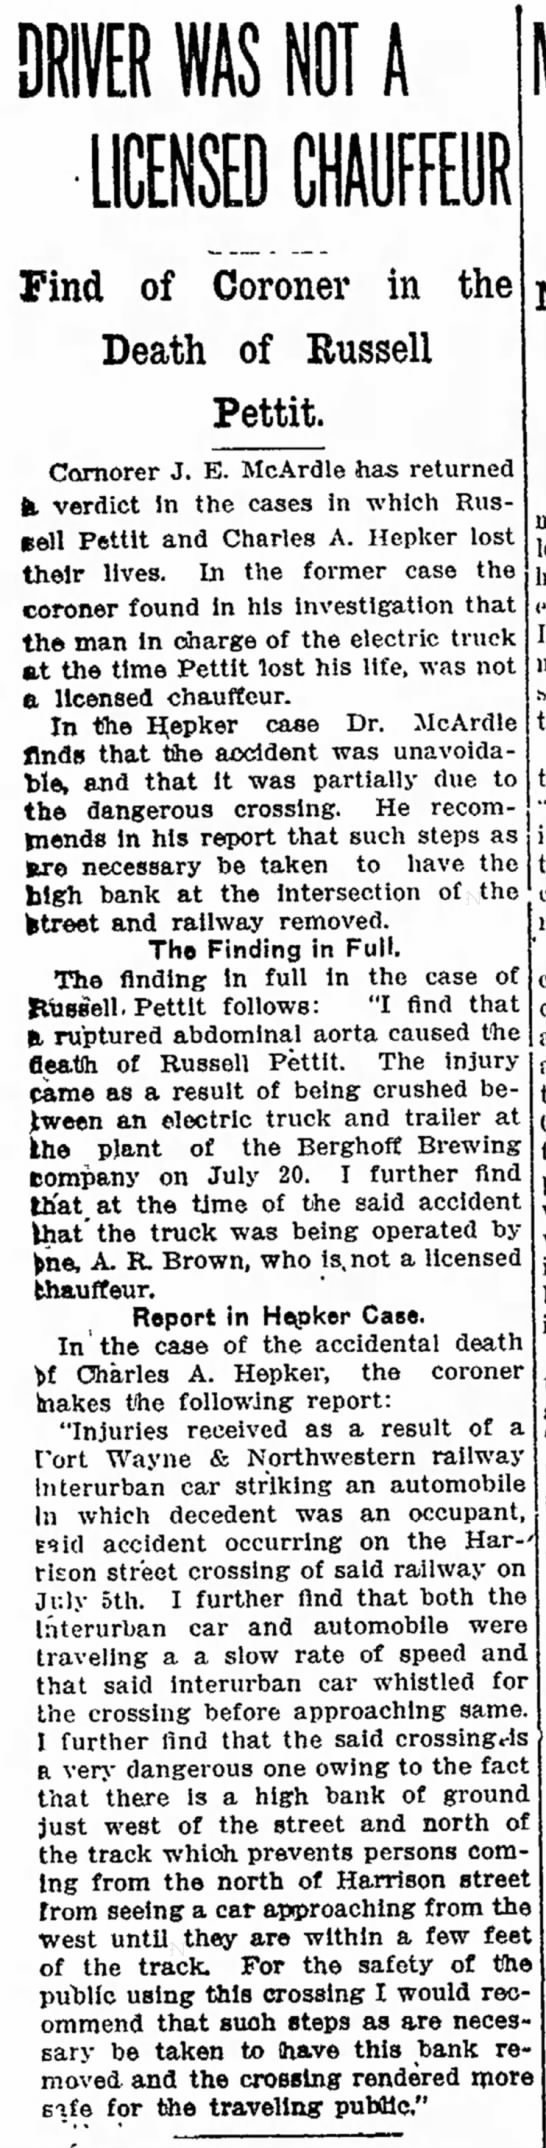 Russel Pettit Accident 7-24-1916